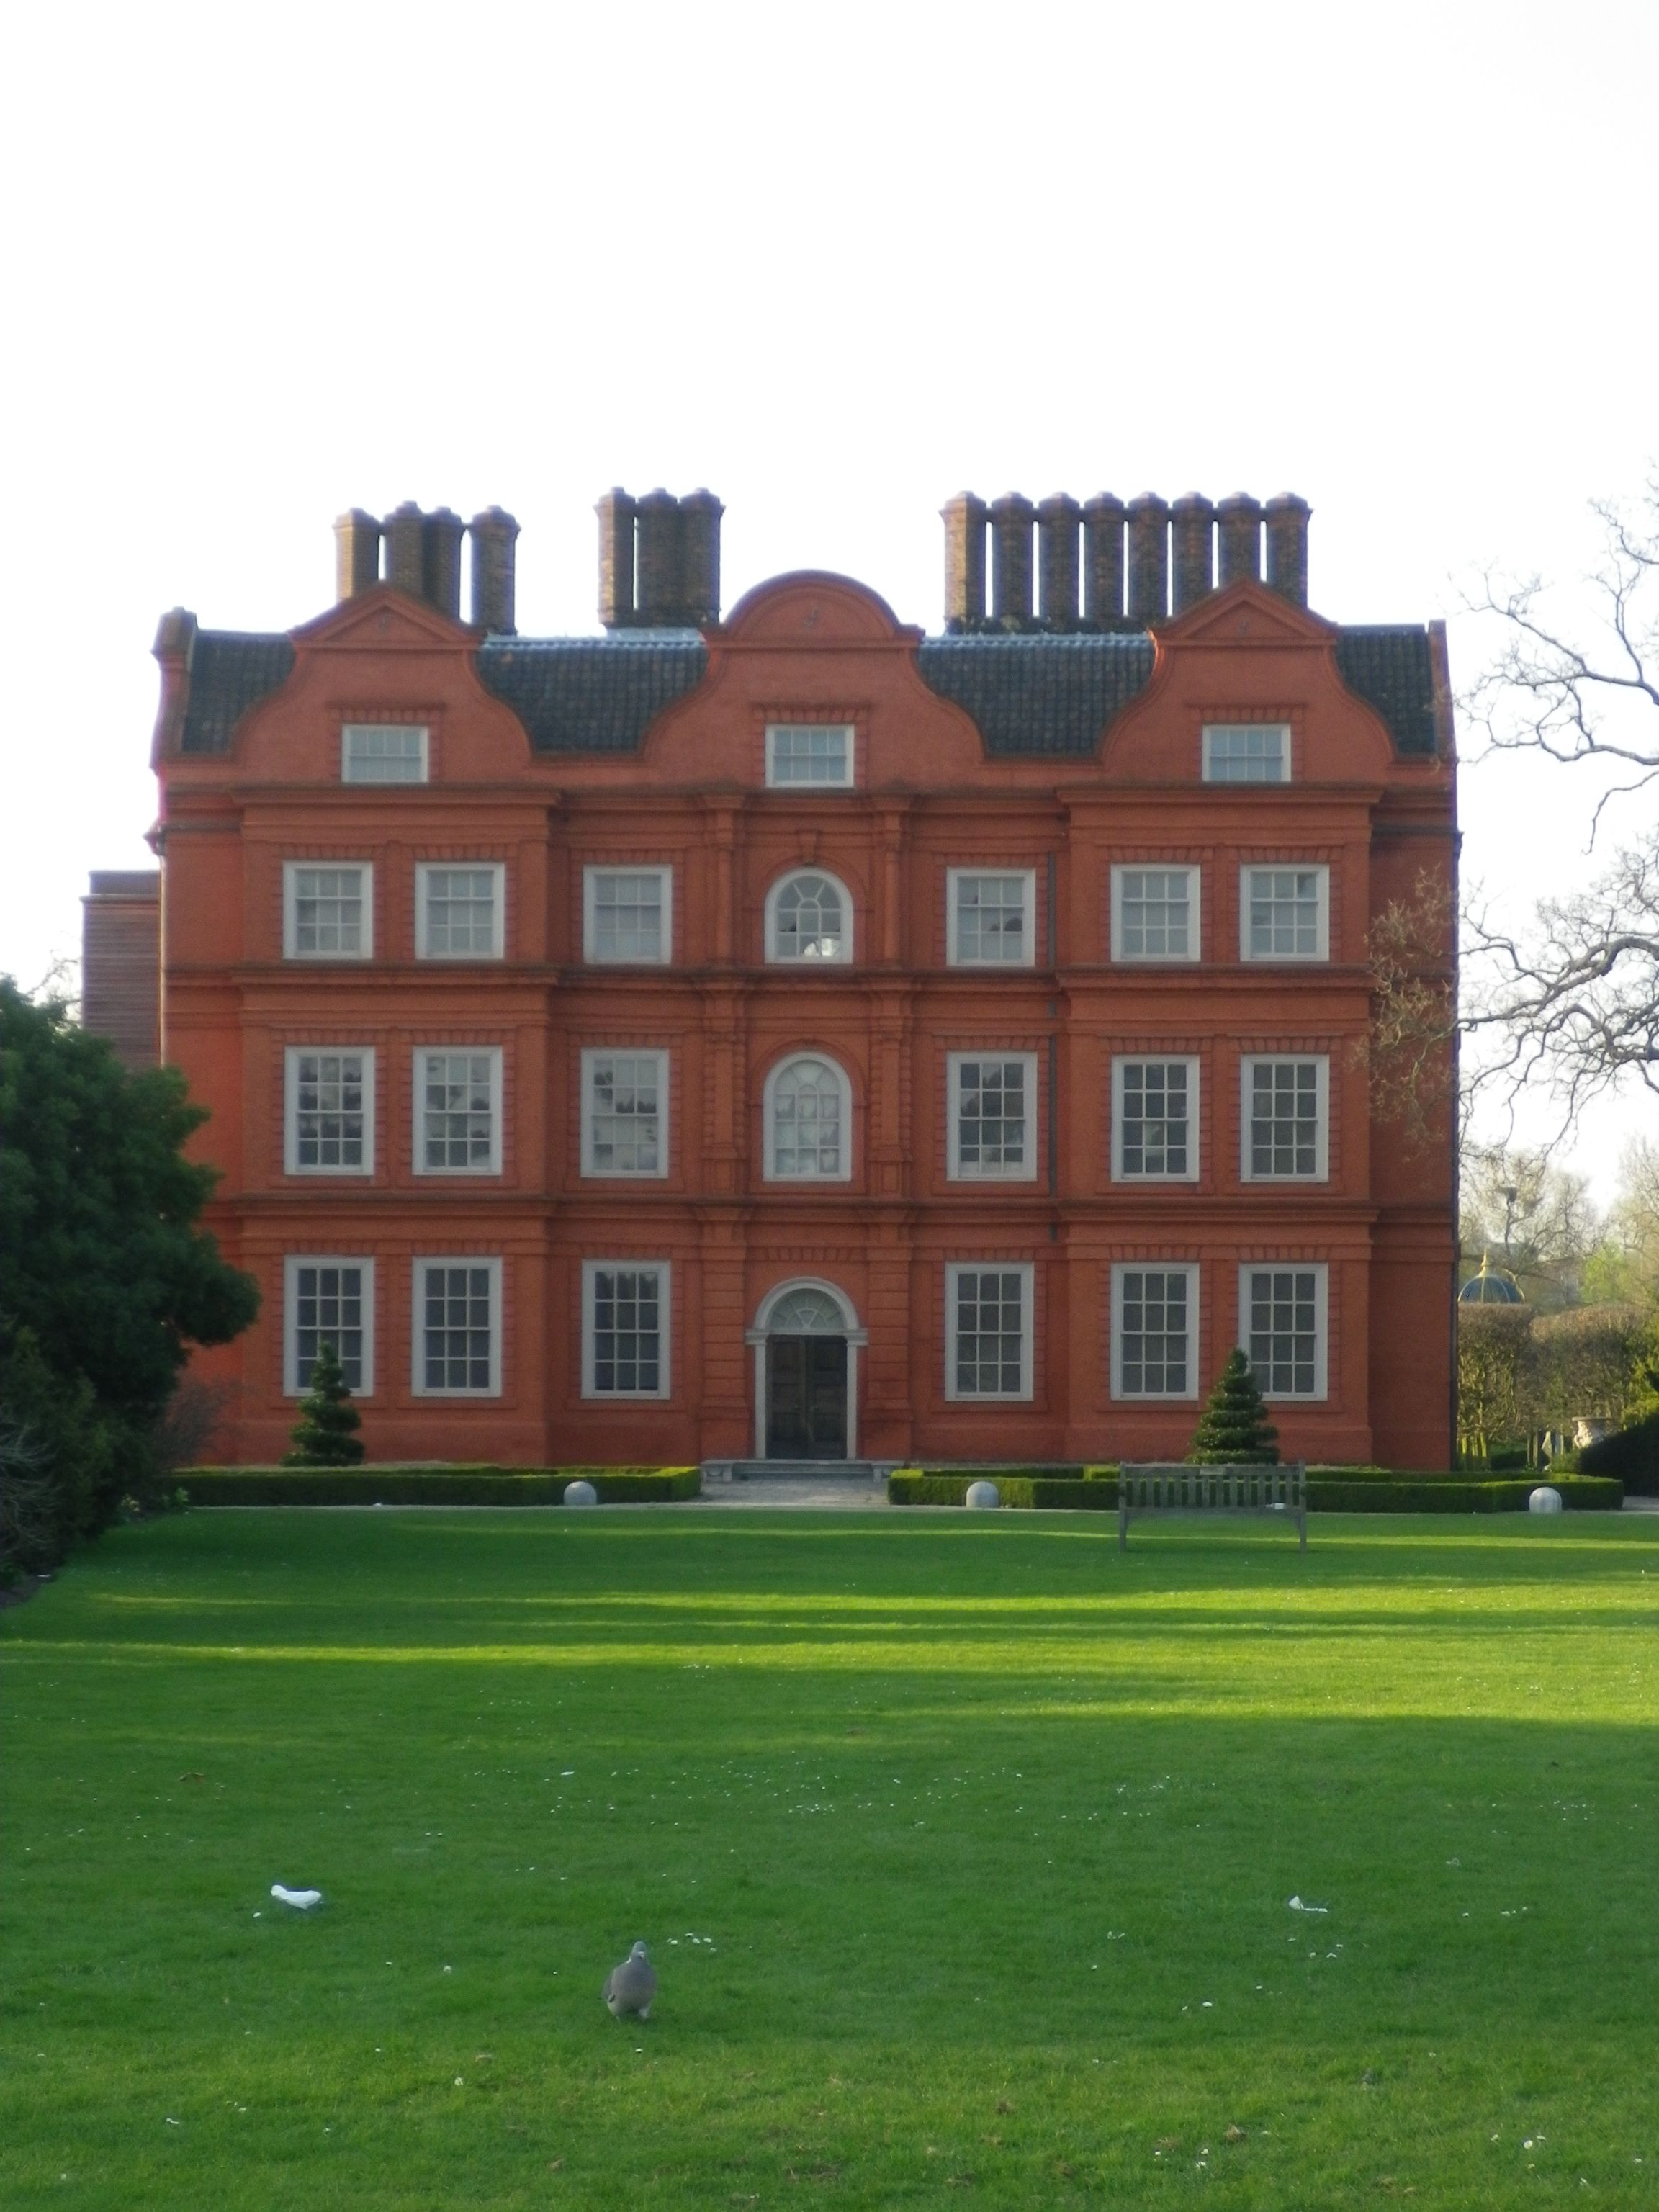 Kew Palace, recently renovated, was where George III was incarcerated during his 'madness', the Regency period.